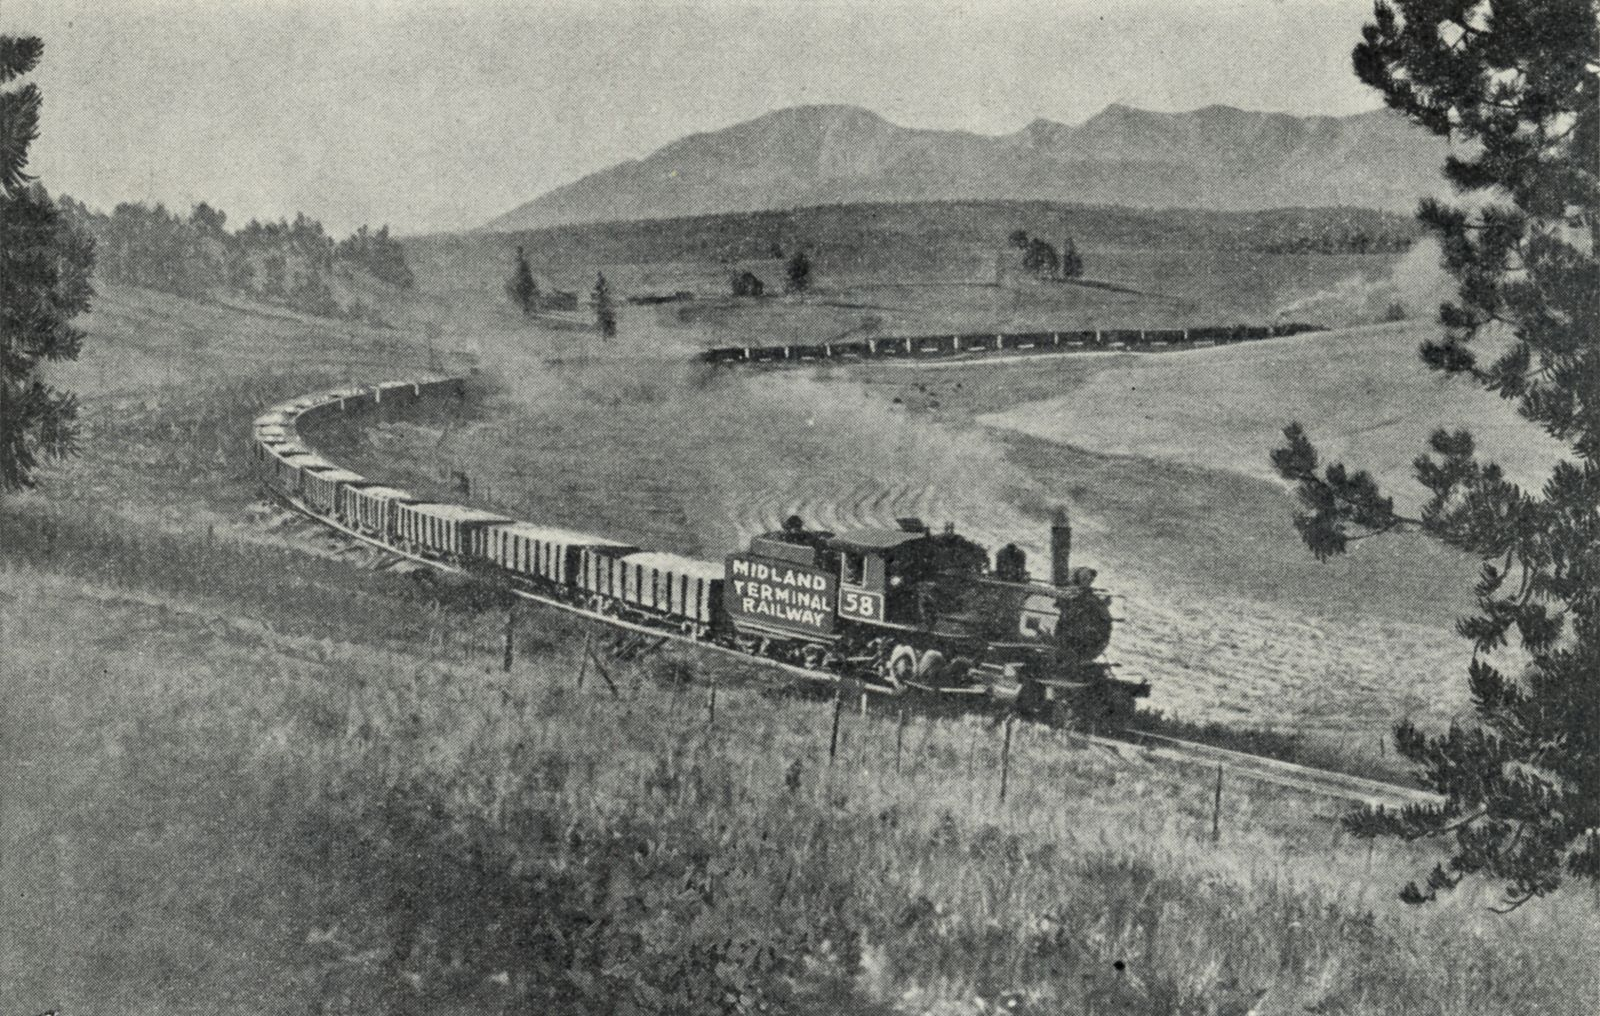 ORE TRAIN en route from Cripple Creek District to the Golden Cycle Mill over the Midland Terminal Railway, wholly owned subsidiary of The Golden Cycle Corporation.